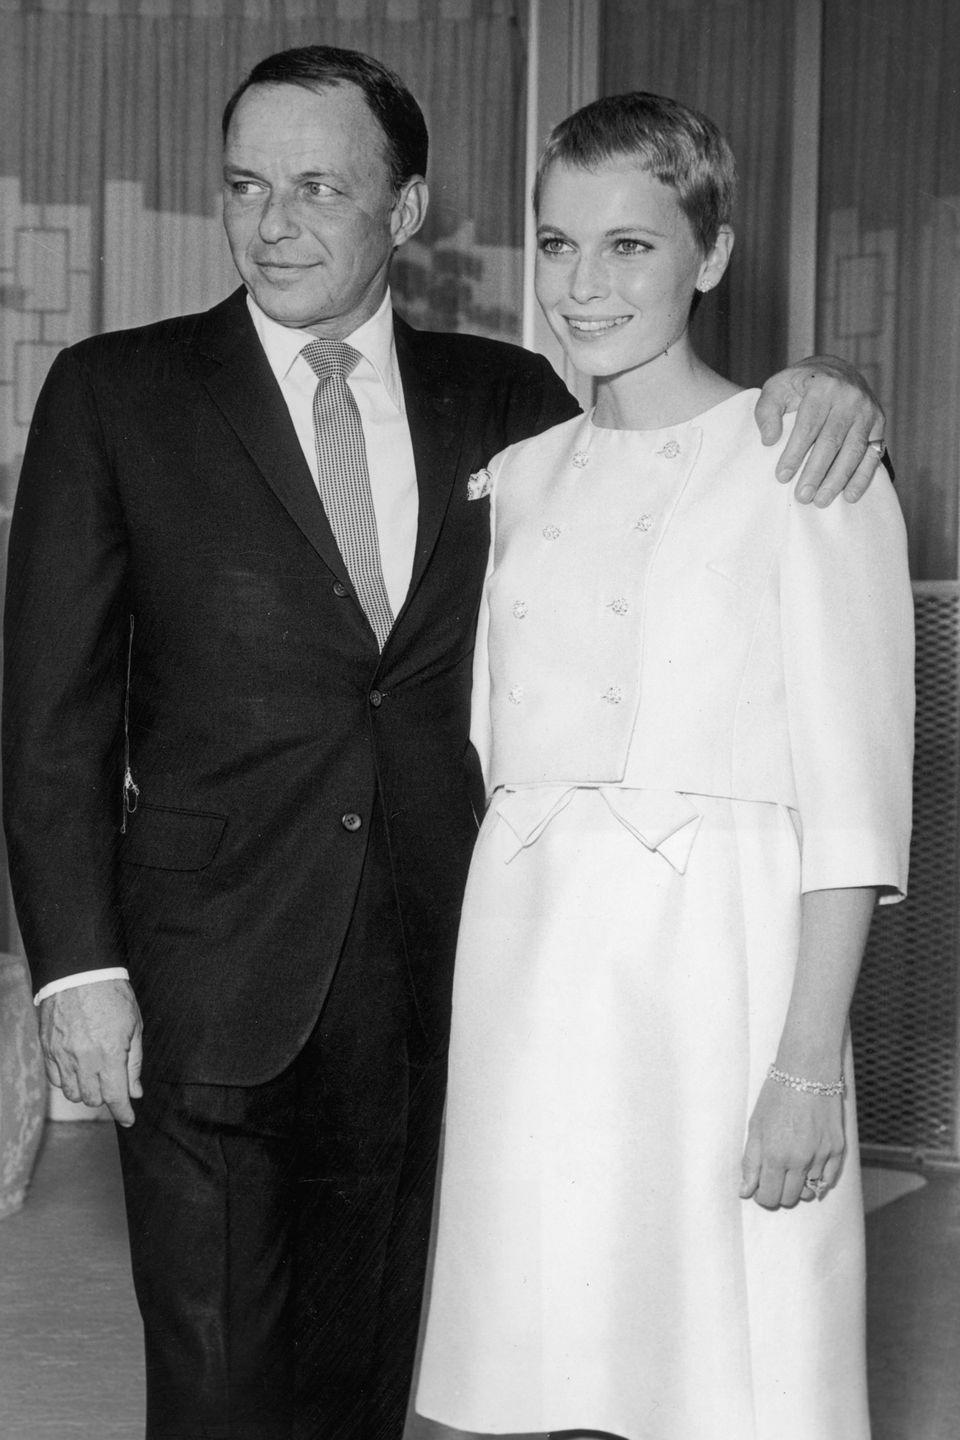 <p>On top of being a trendsetter with her iconic pixie cut, Mia Farrow totally ignored conventions when she wore a short, structured white skirt suit for her wedding to Frank Sinatra in 1966. The marriage itself was seen as scandalous, given the age difference between the pair: Farrow was just 21 at the time, while Sinatra was 50 years old.</p>